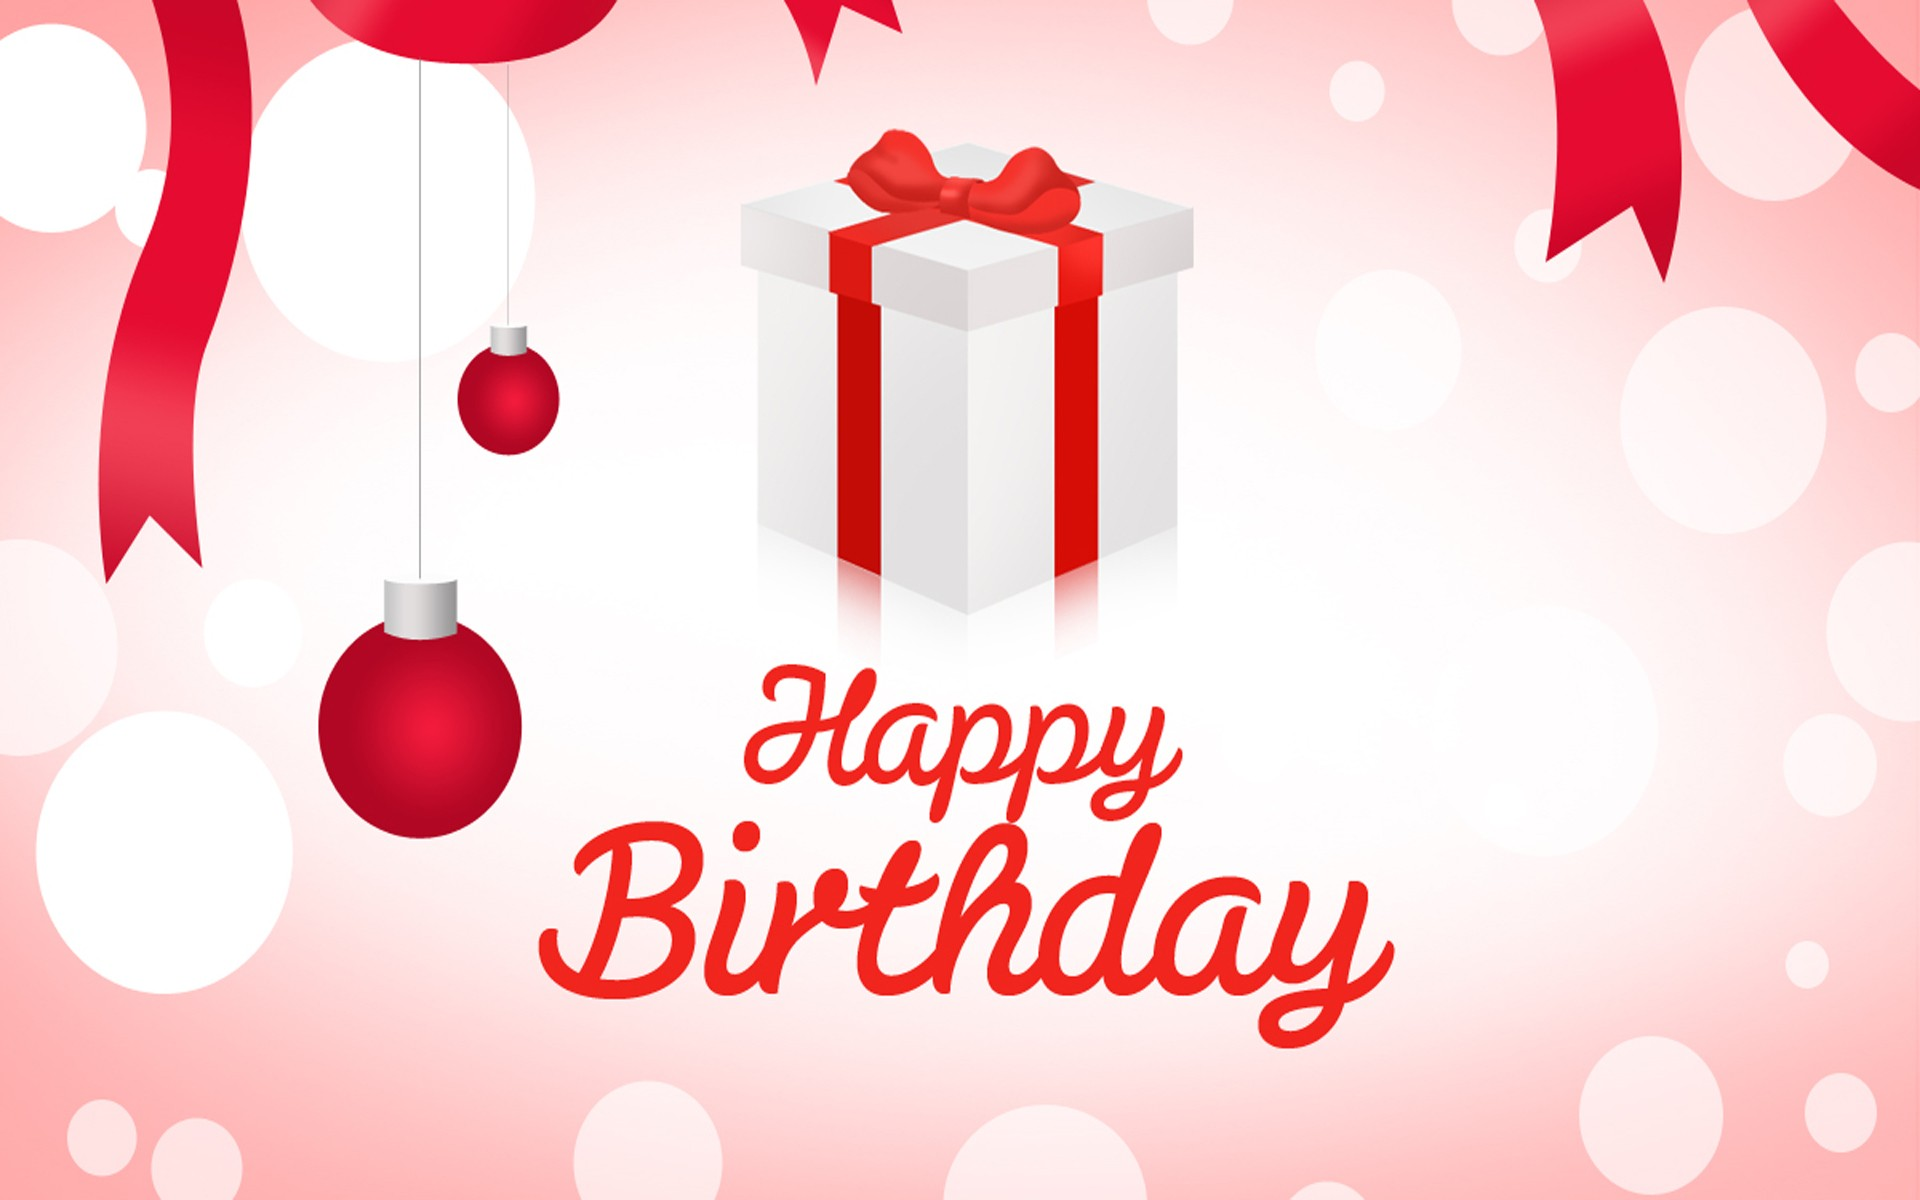 Birthday Wallpapers, Photos And Desktop Backgrounds Up To